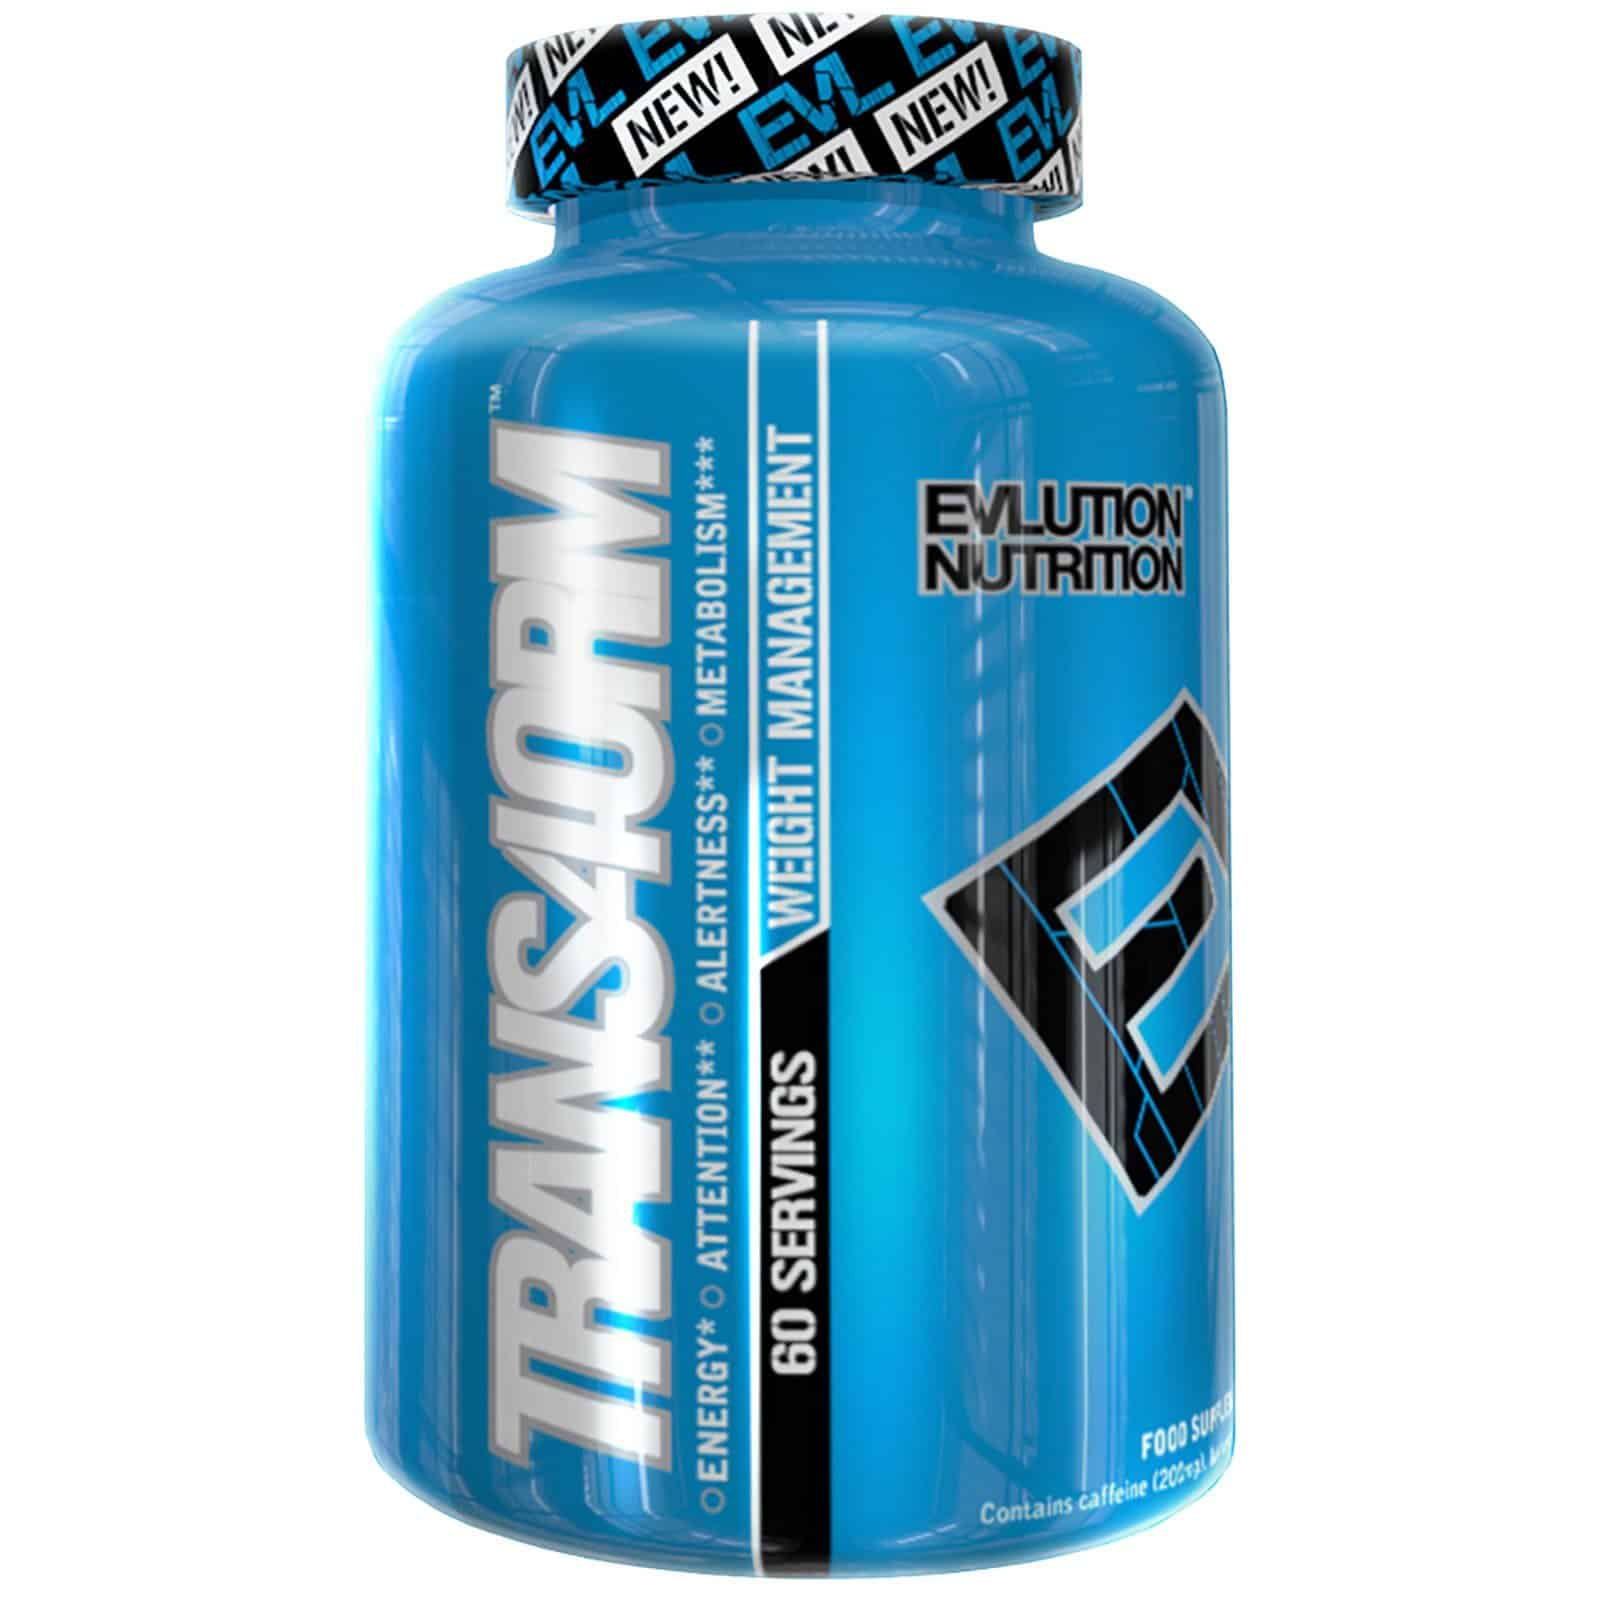 The EVLution Nutrition Trans4orm Review - Will You Love It?